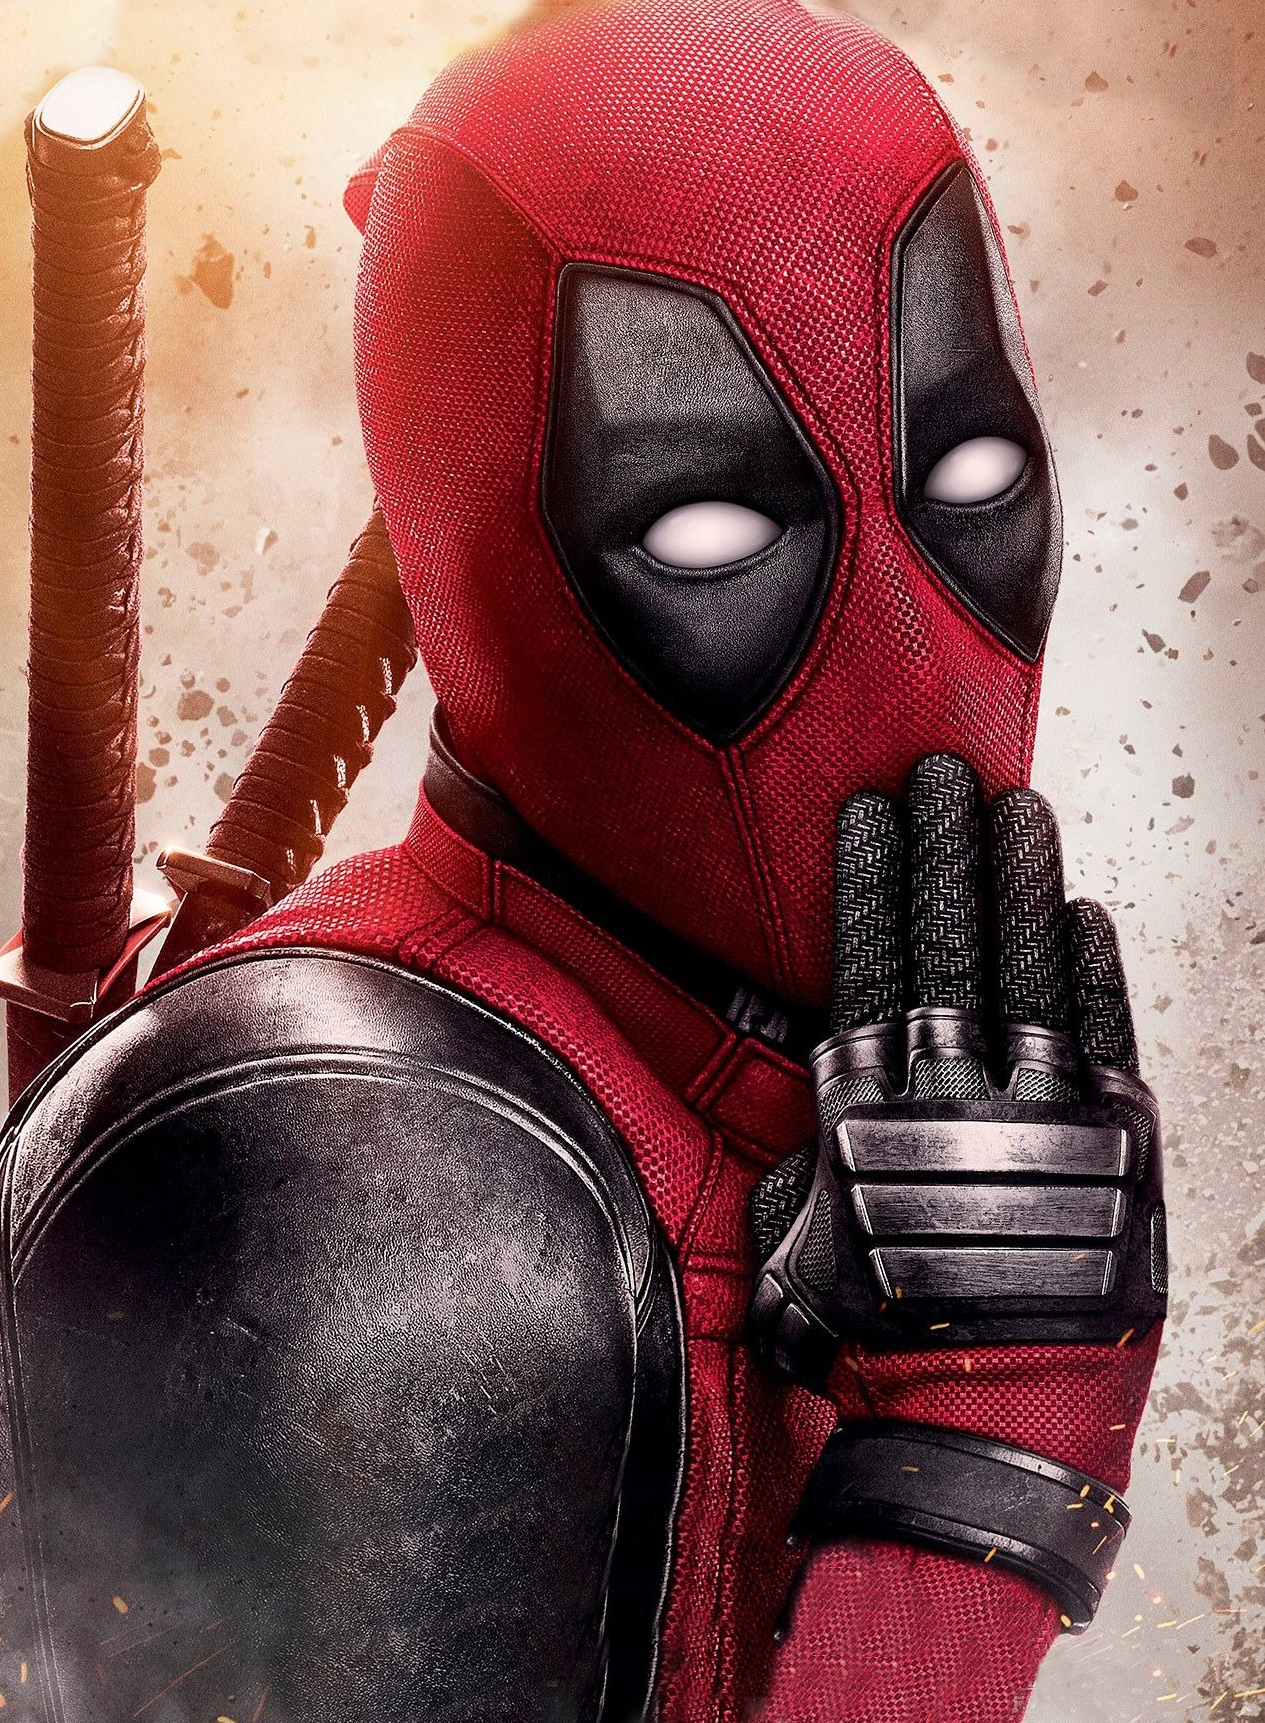 Deadpool 2016 Cast And Crew Images